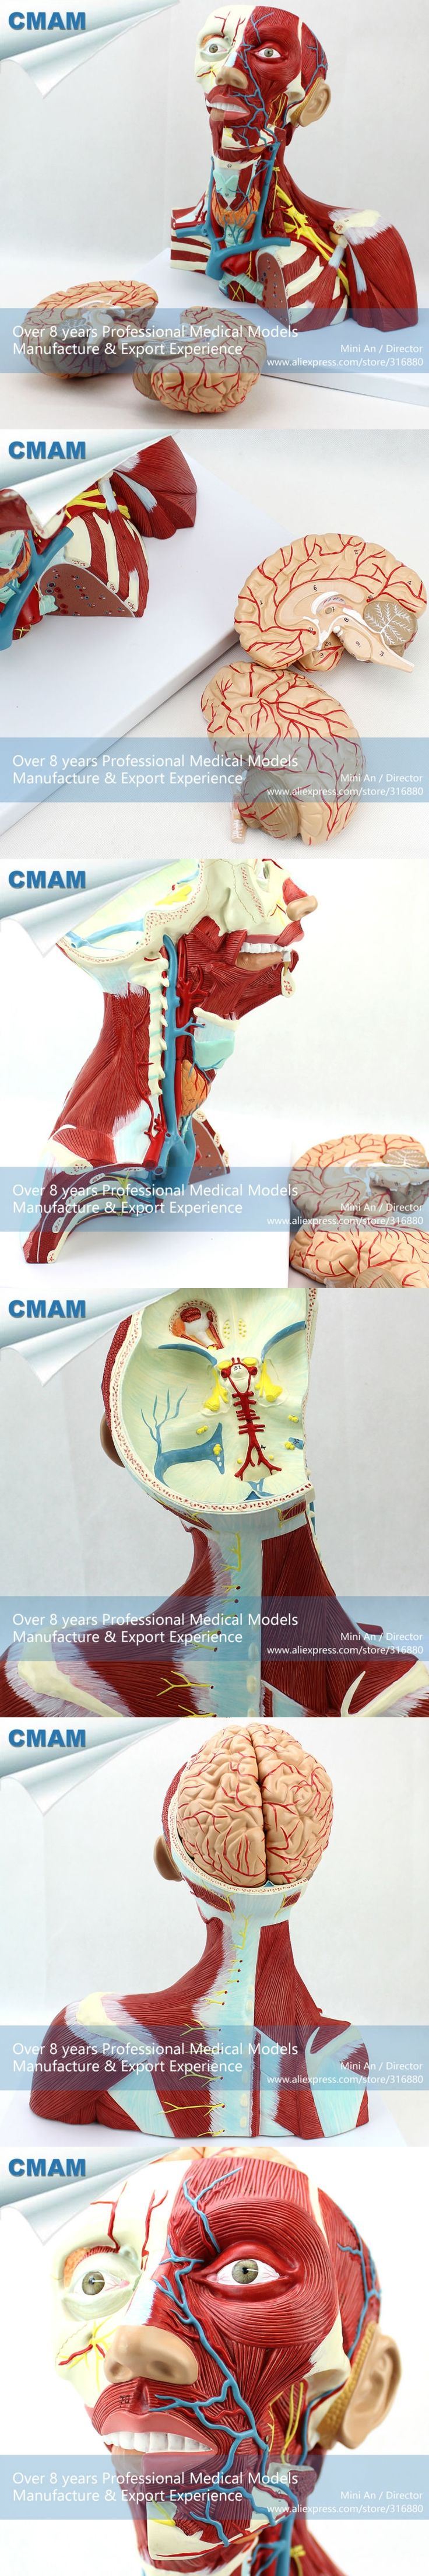 CMAM-MUSCLE16 Medical Education Anatomical Neck Muscle Anatomy Model